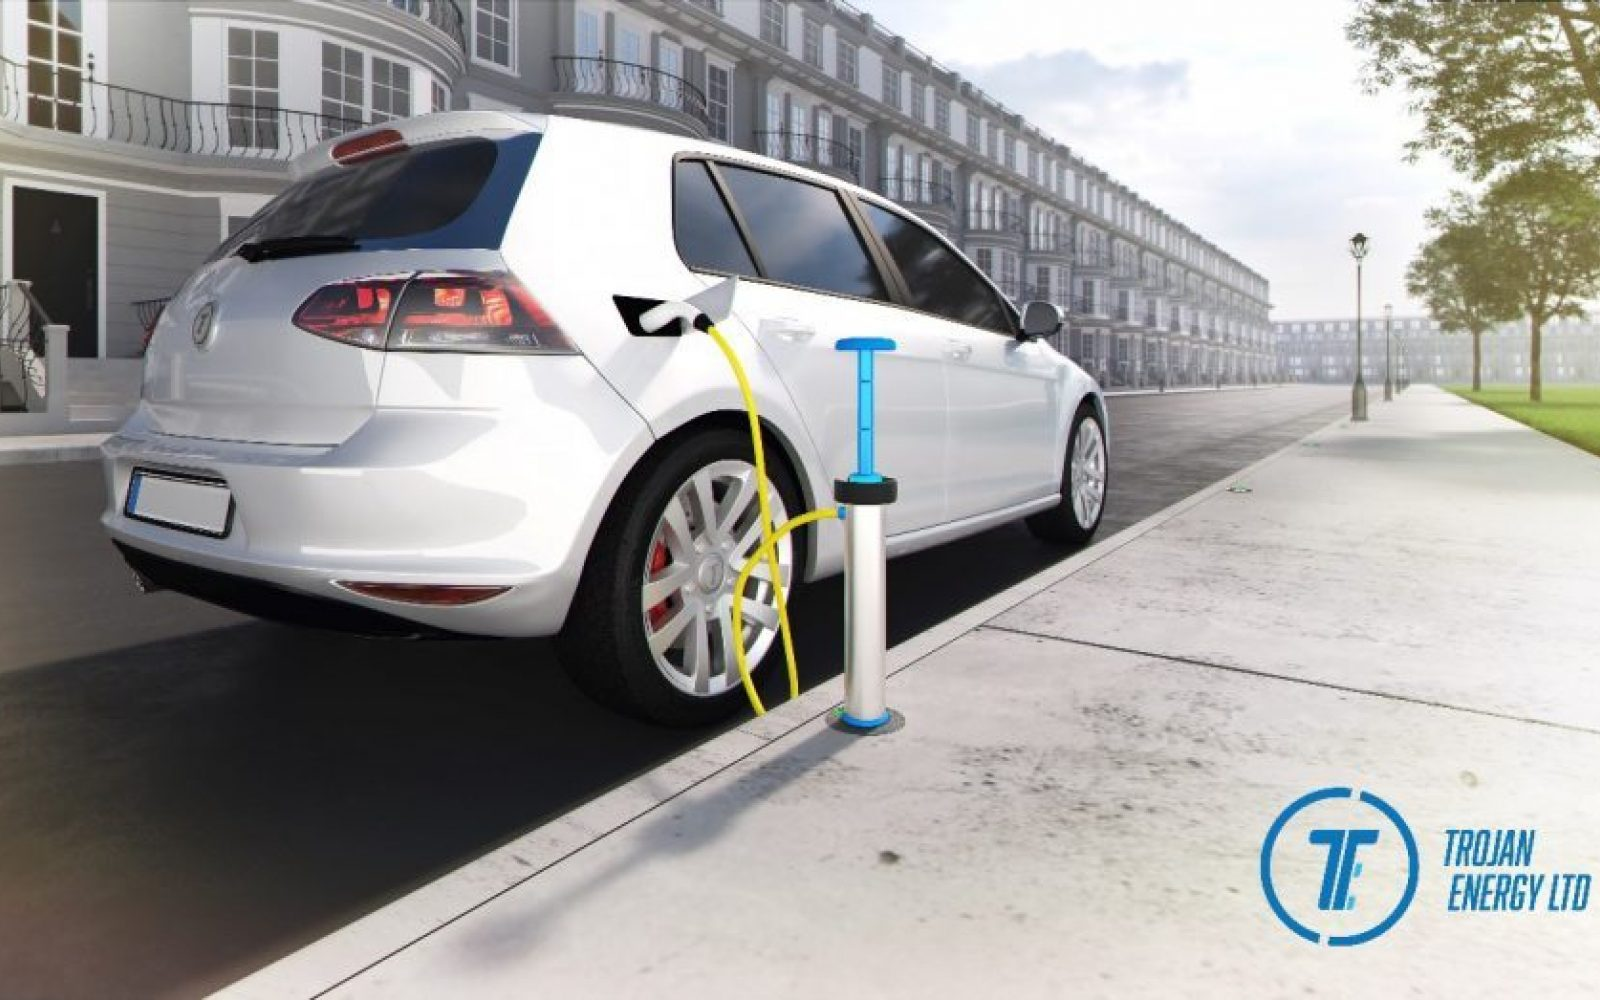 A CGI of the new Trojan Energy charge point, allowing discreet curbside charging. Image: Element Energy.